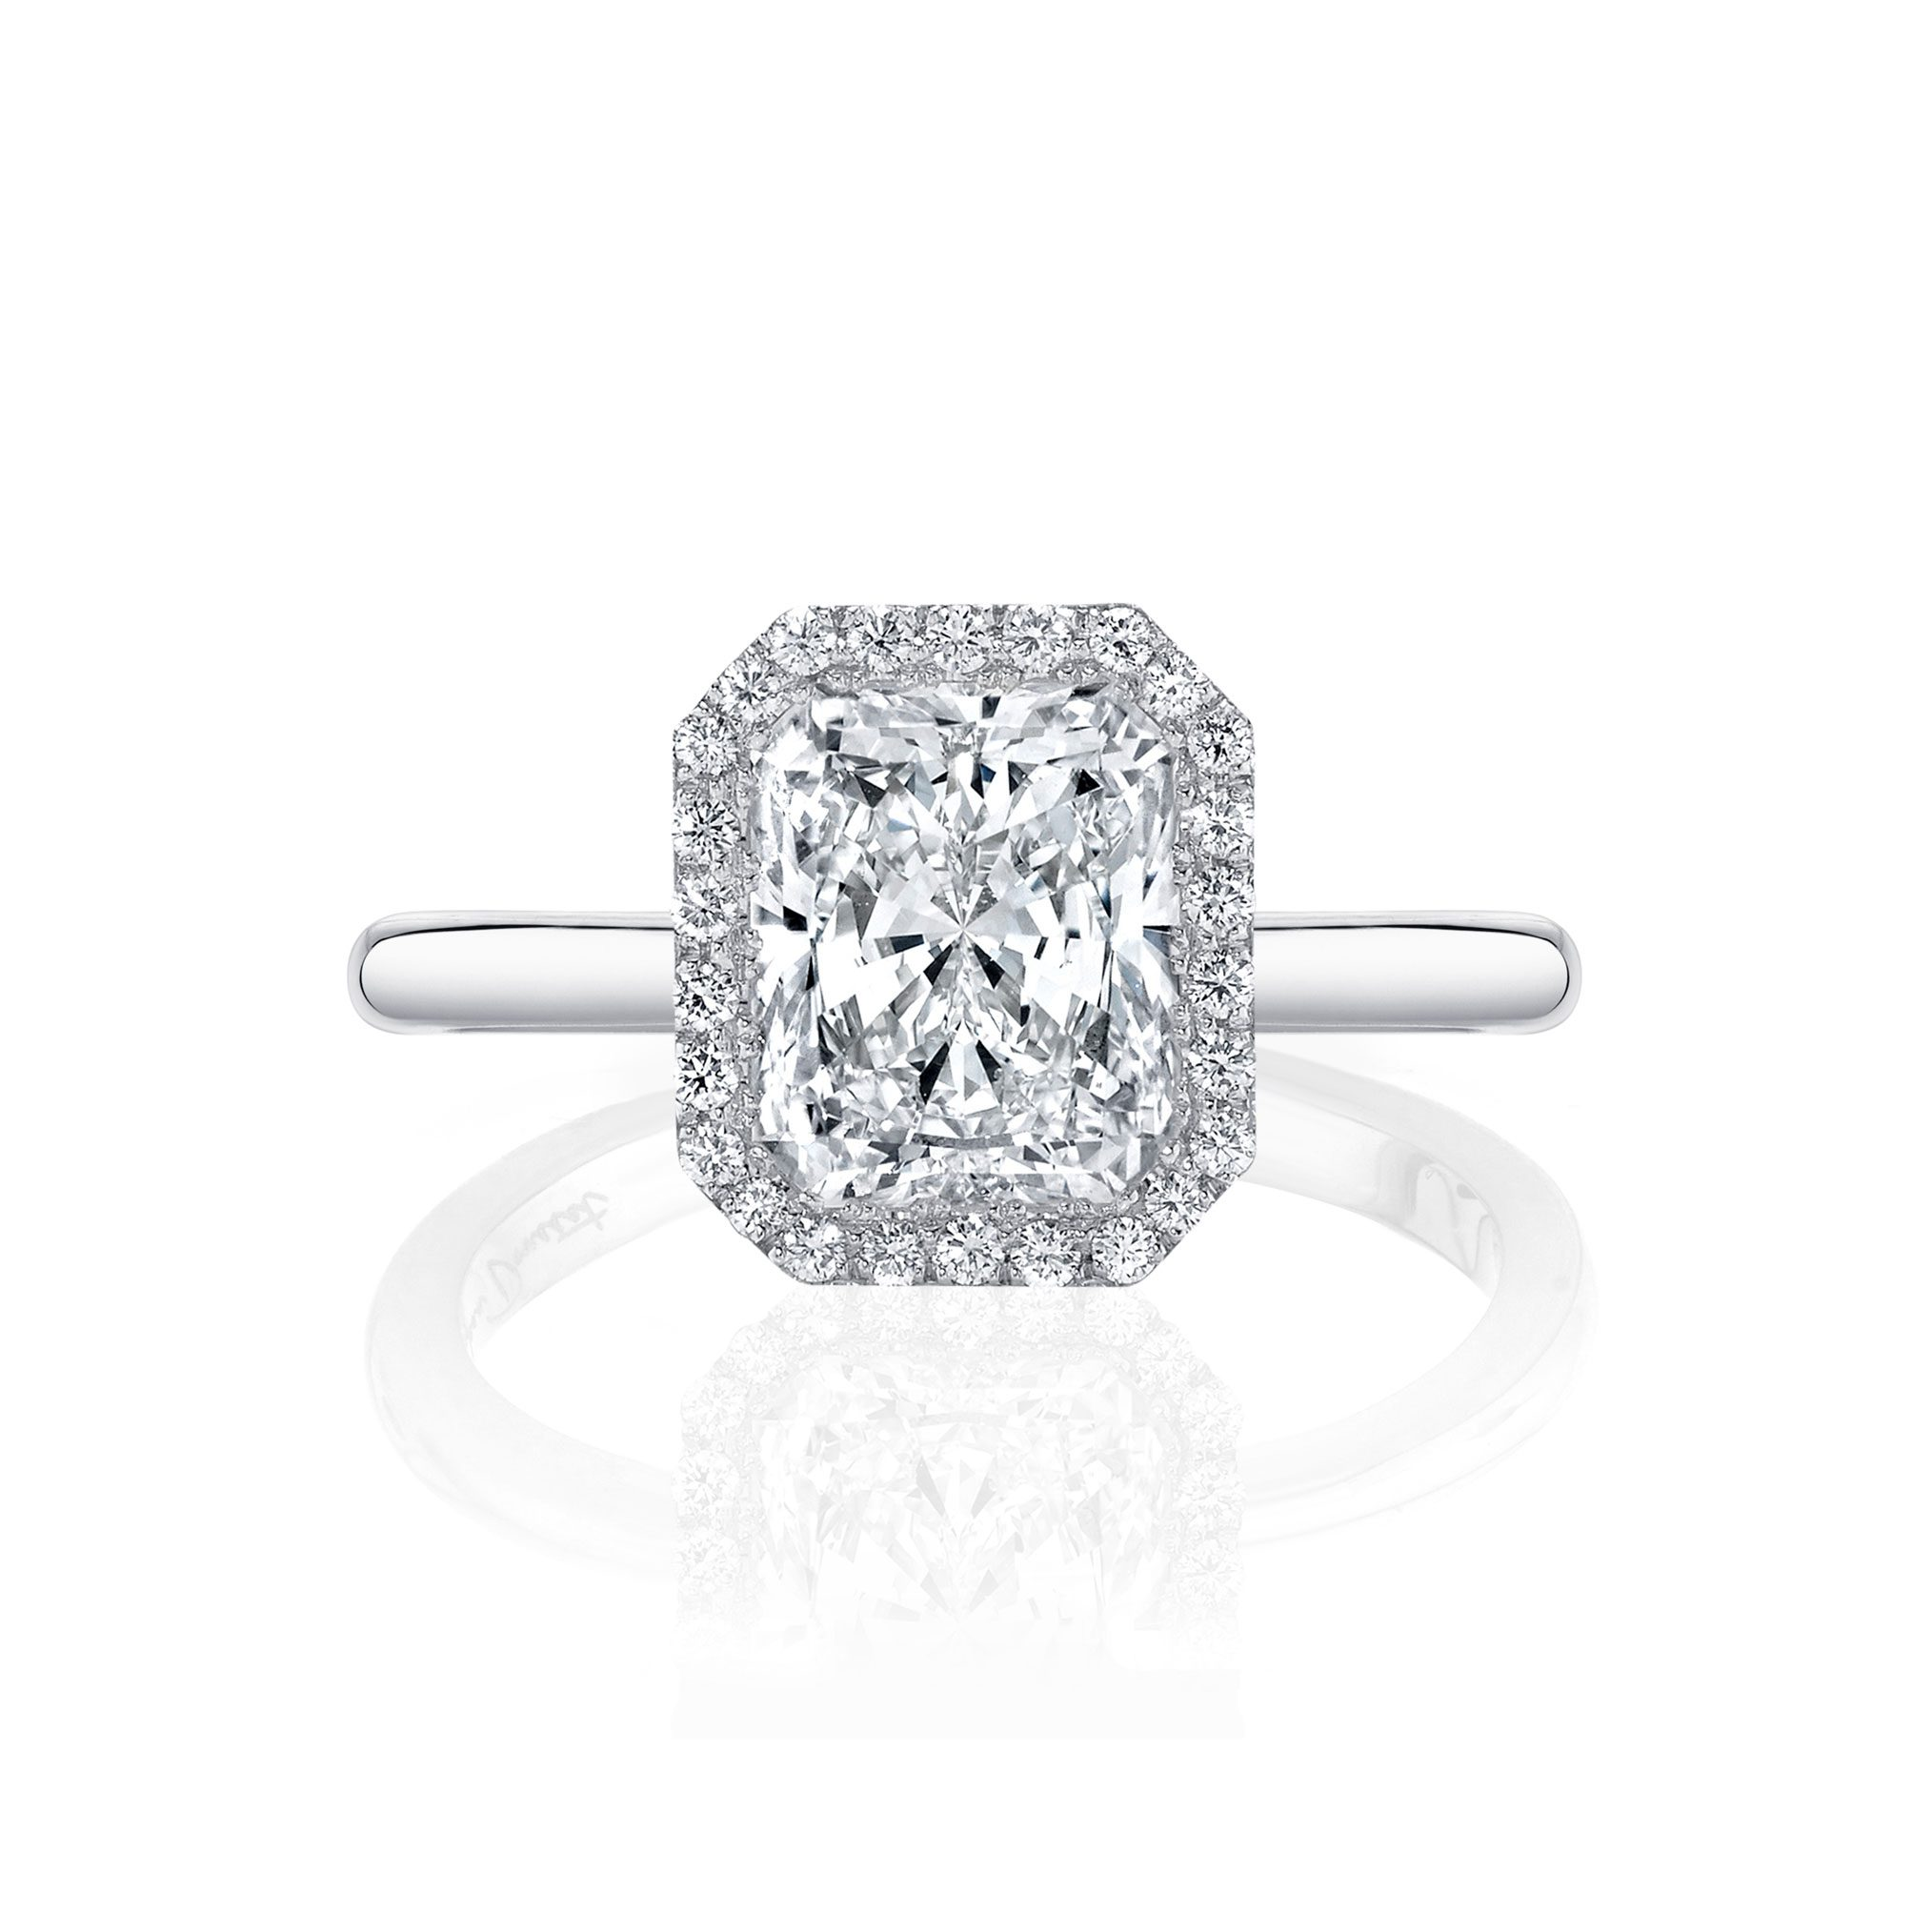 Colette Seamless Halo® Engagement Ring Radiant Cut Ring with 18k white gold band